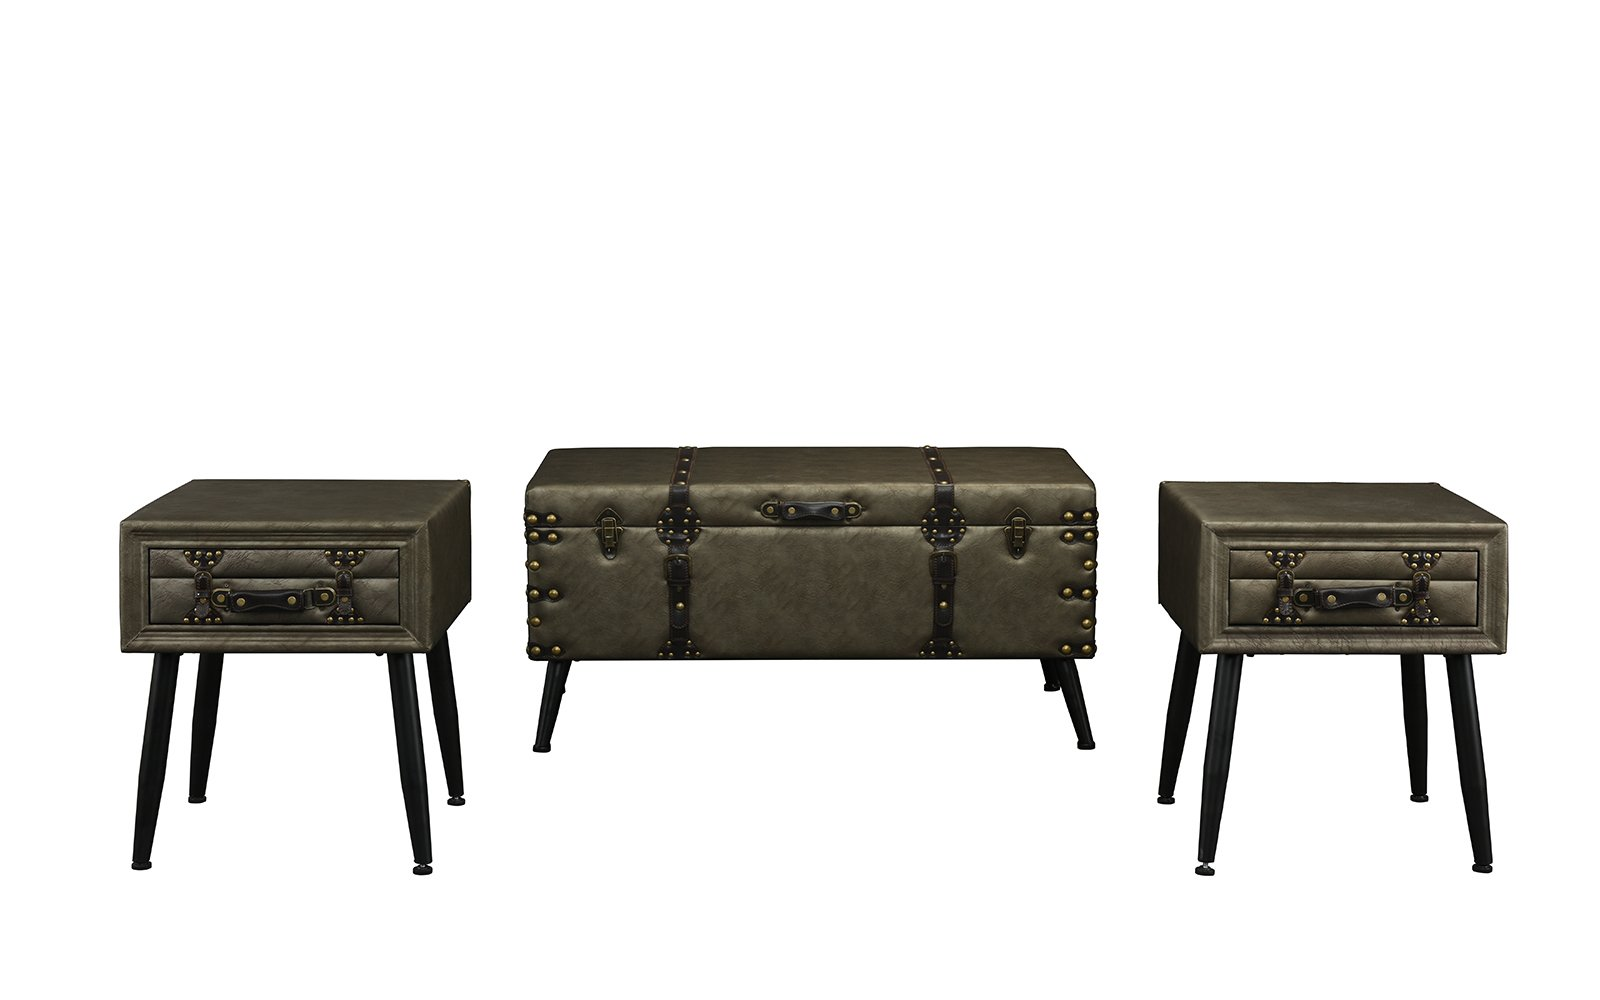 averie piece faux leather storage chest accent table set gry tables and chests round for foyer grey wash wood coffee antique corner small tall white pier one dining chairs under